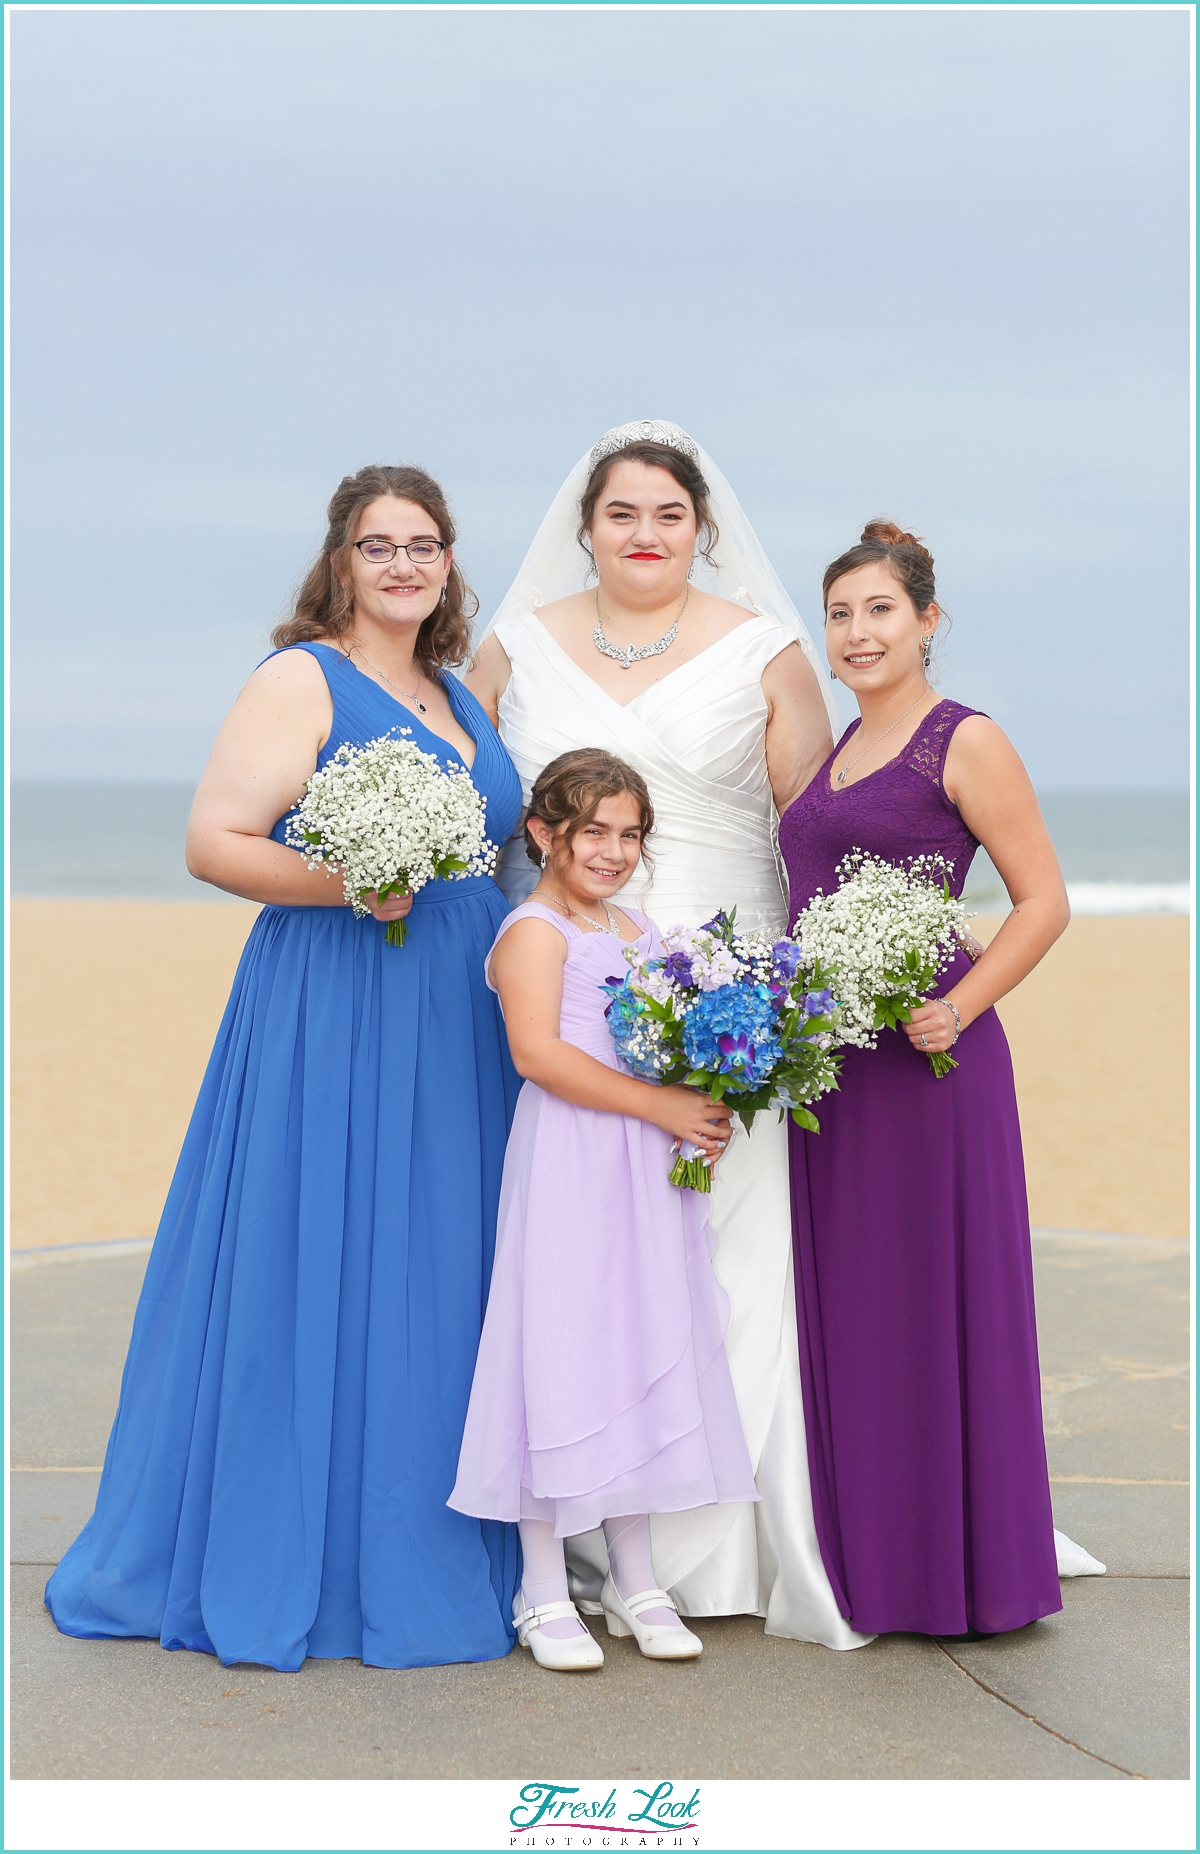 bridal squad photo ideas